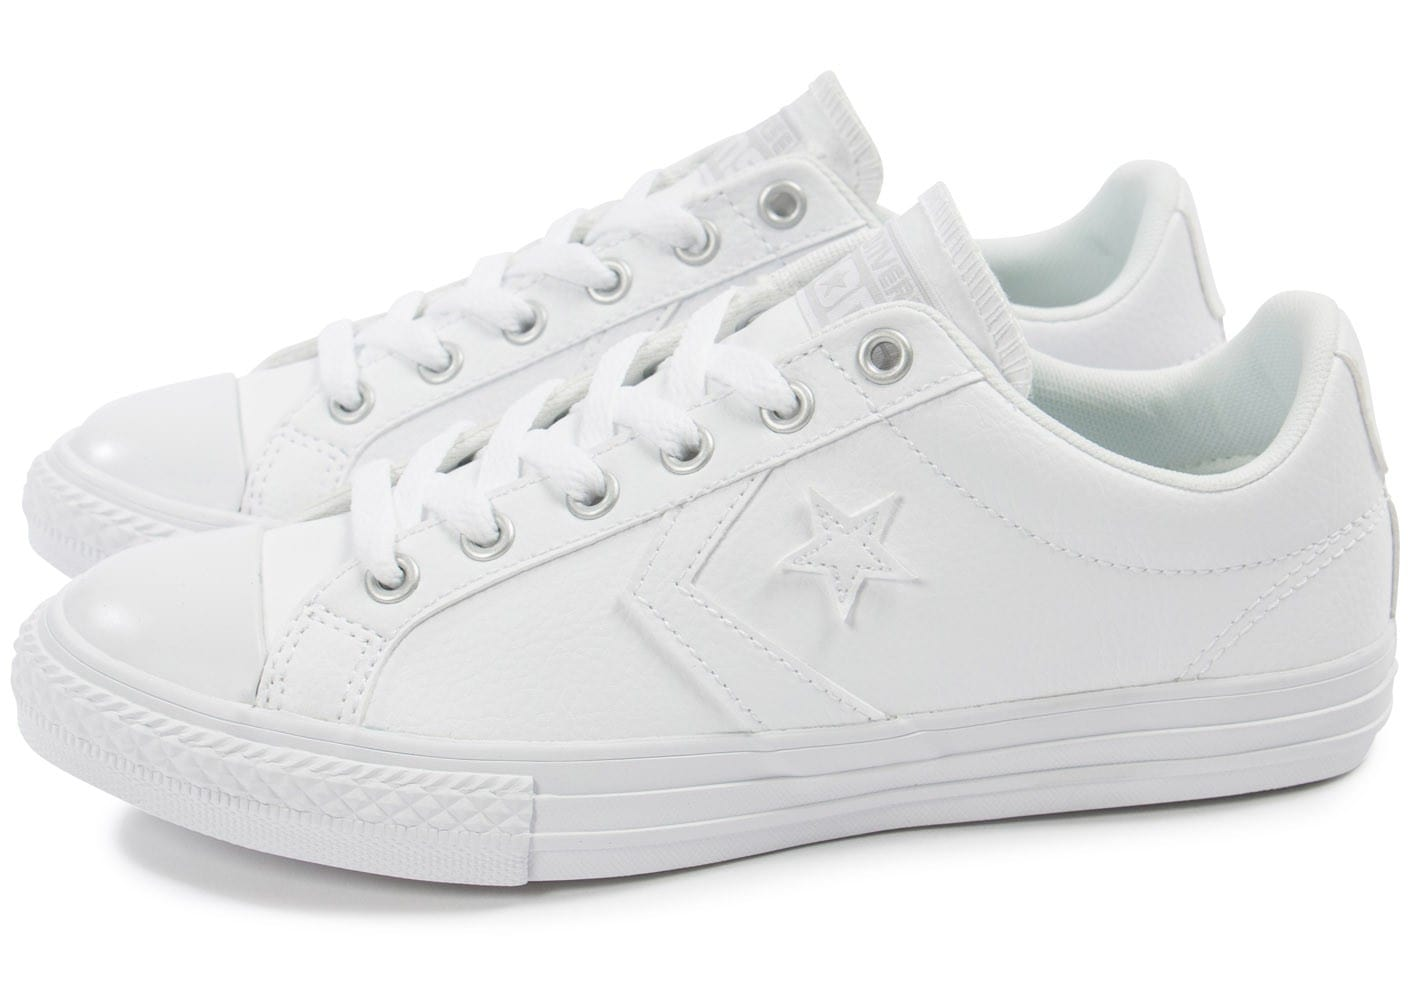 converse star player cuir blanche chaussures enfant chausport. Black Bedroom Furniture Sets. Home Design Ideas